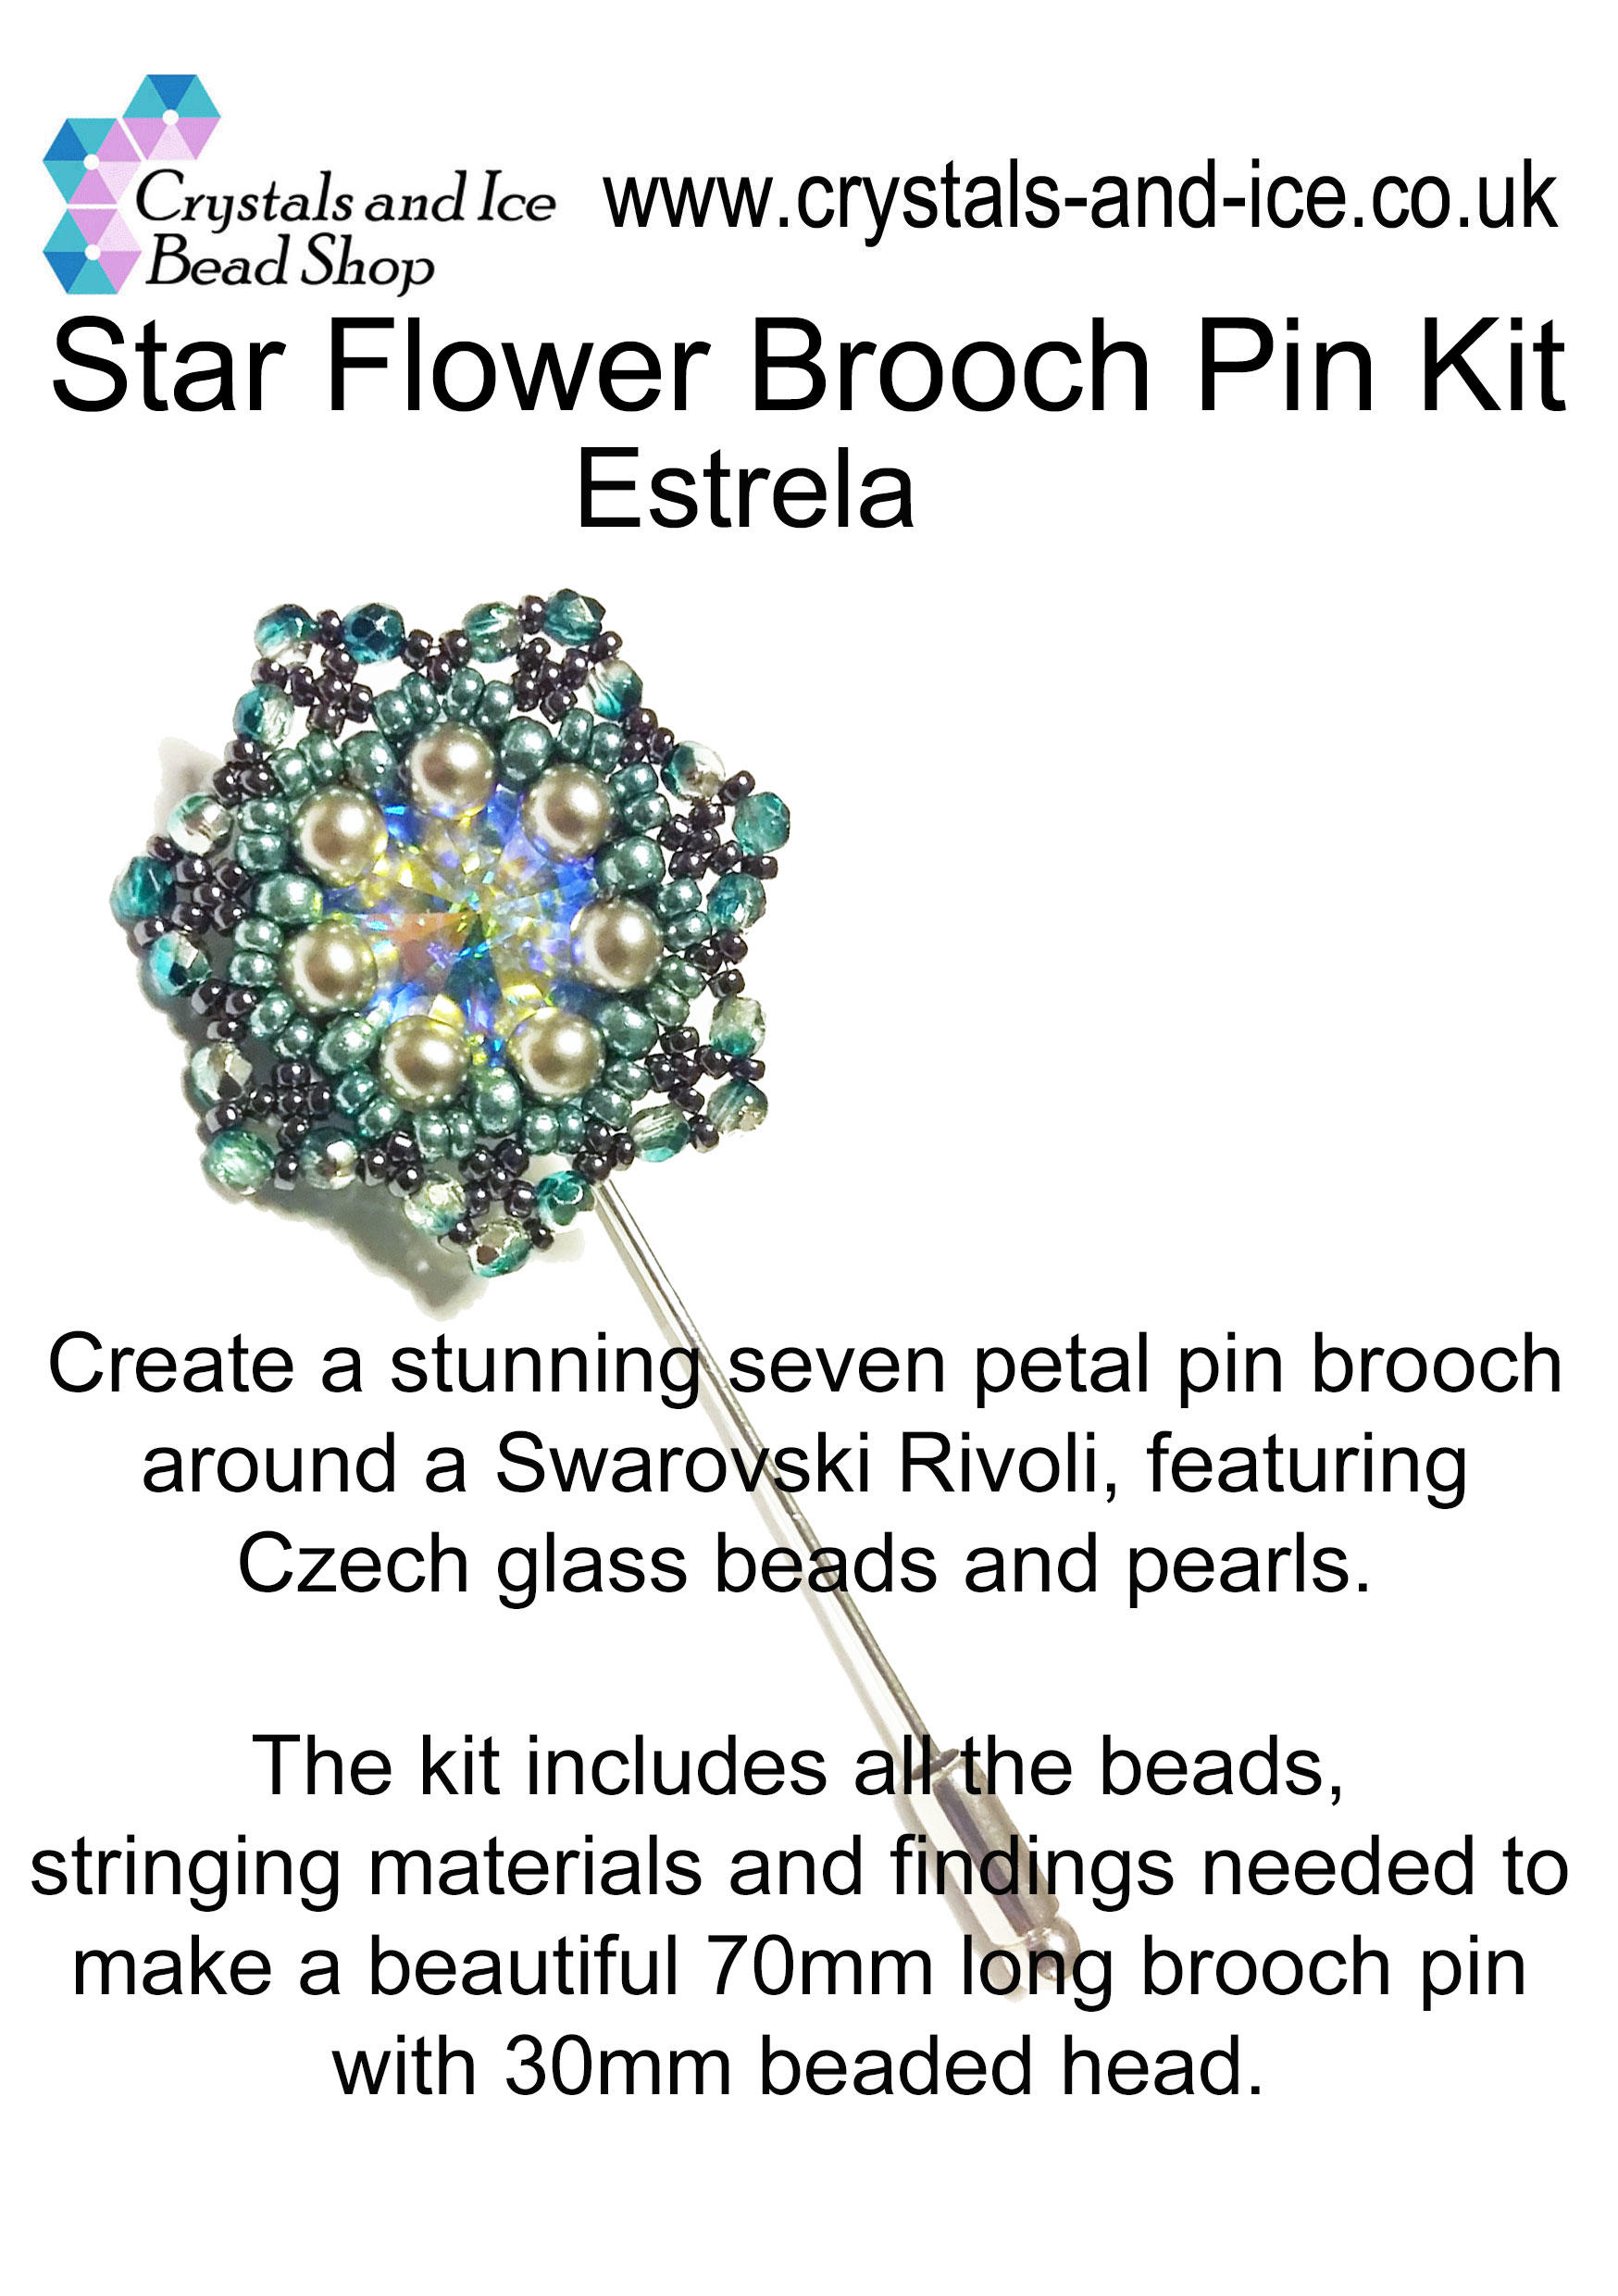 Star Flower Brooch Pin Kit - Estrela